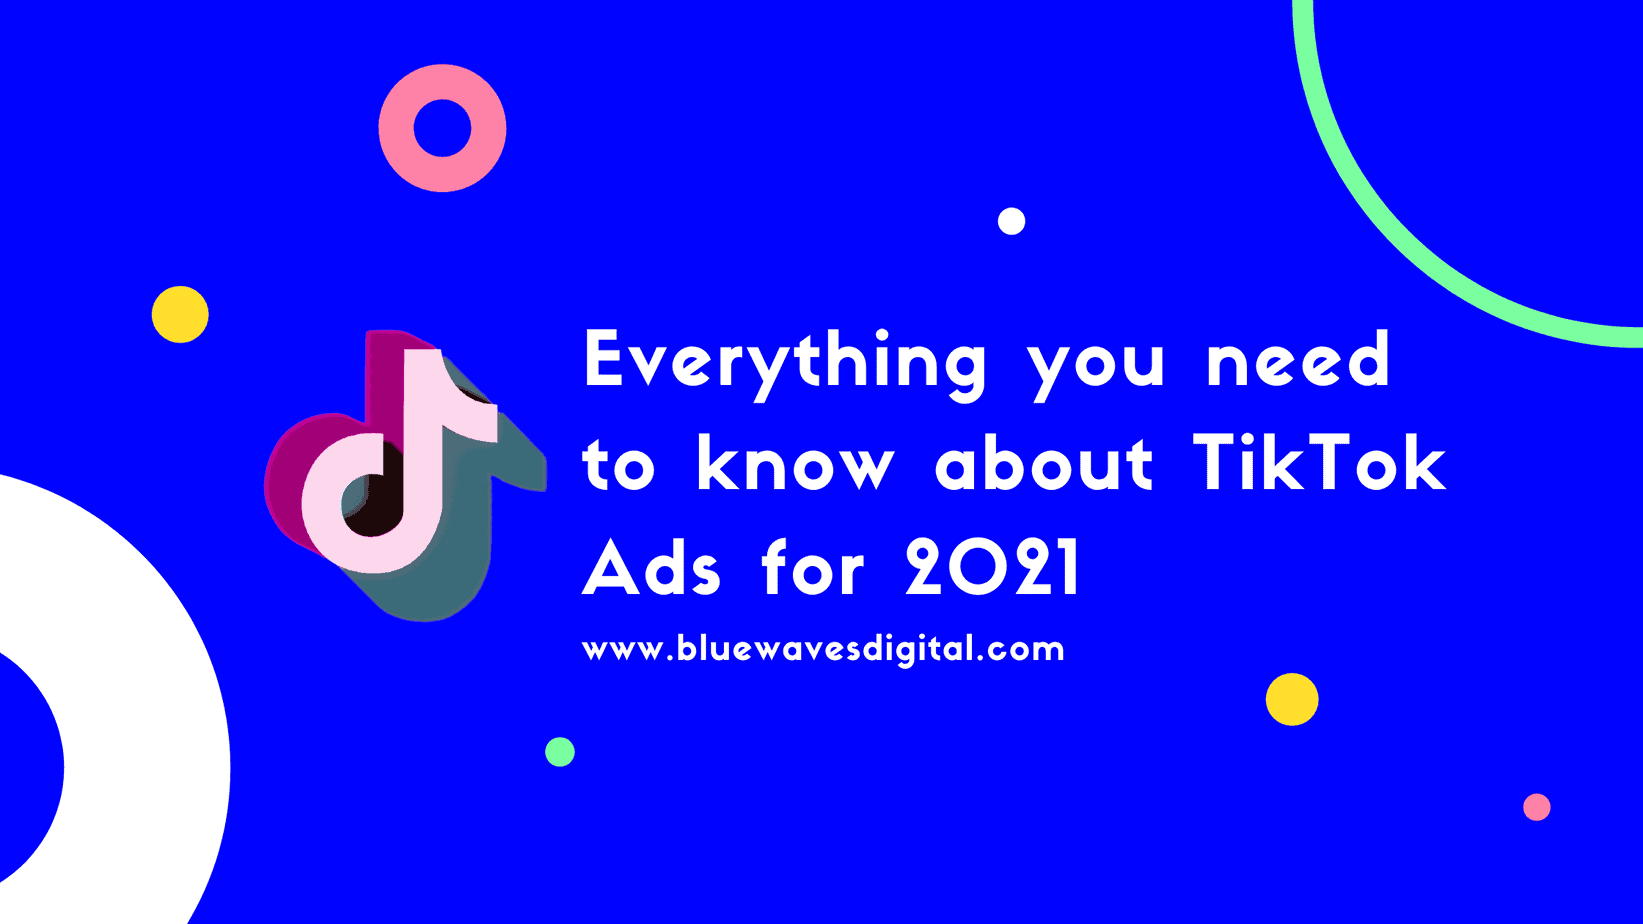 TikTok Ads - Everything You Need To Know For 2021